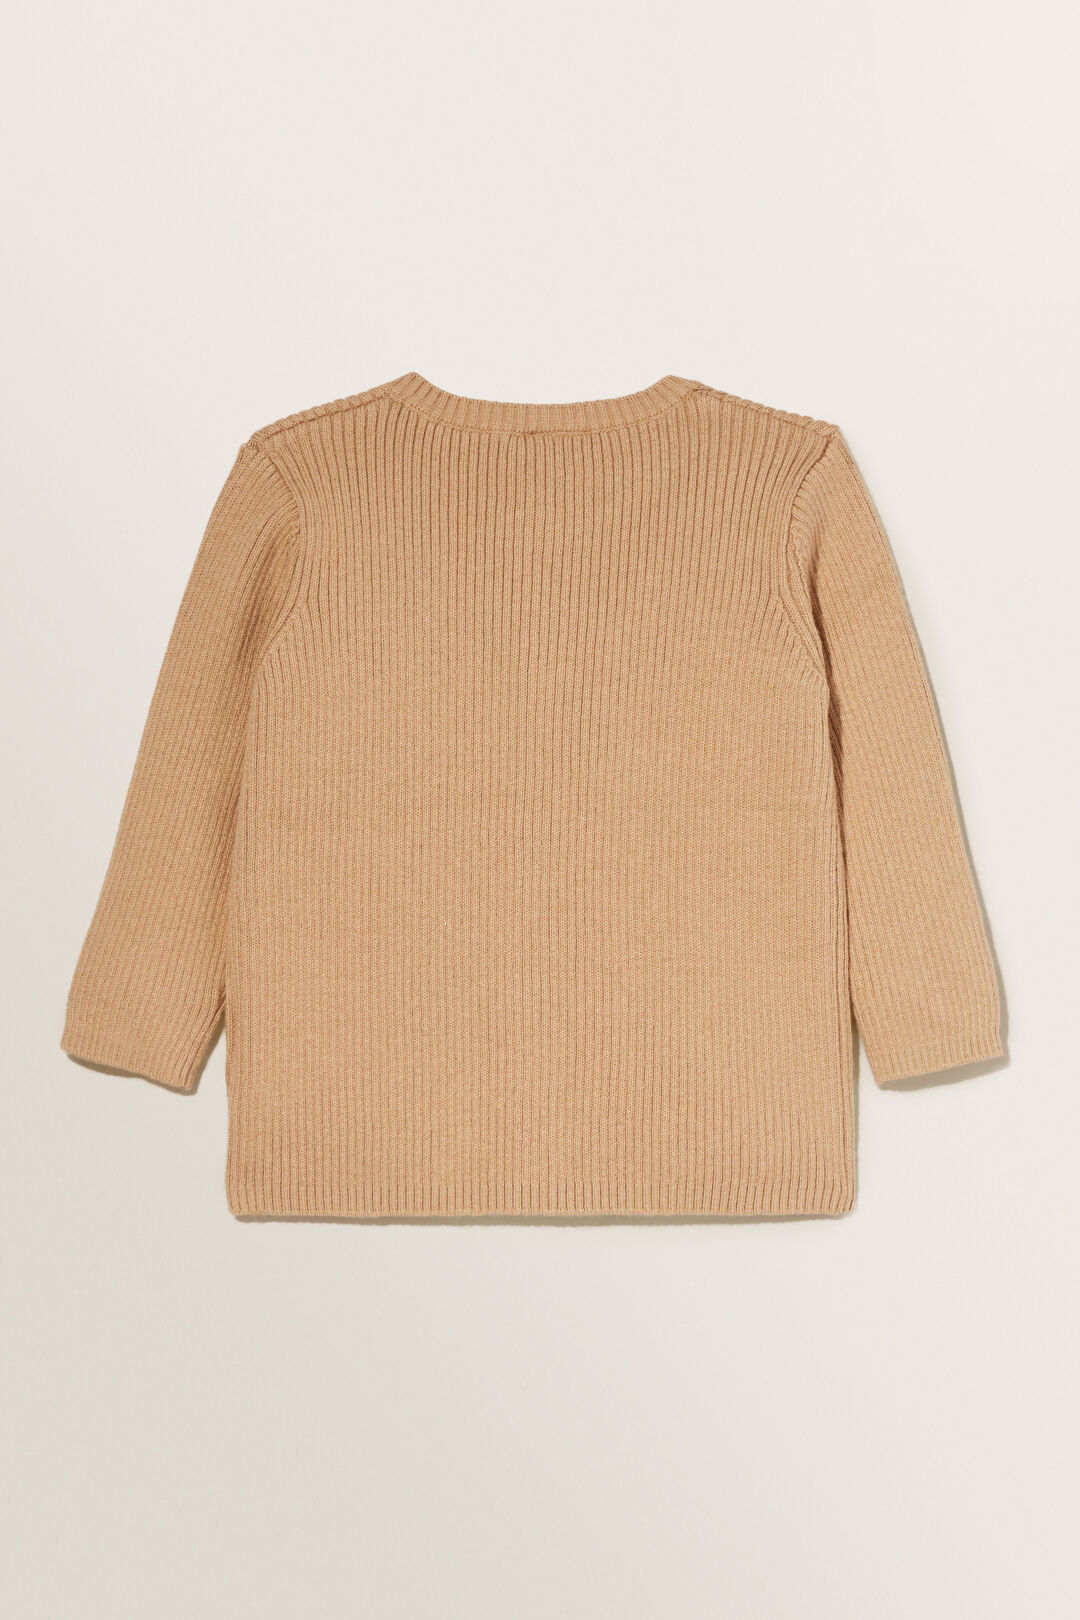 Essential Knitted Cardigan  Wheat  hi-res